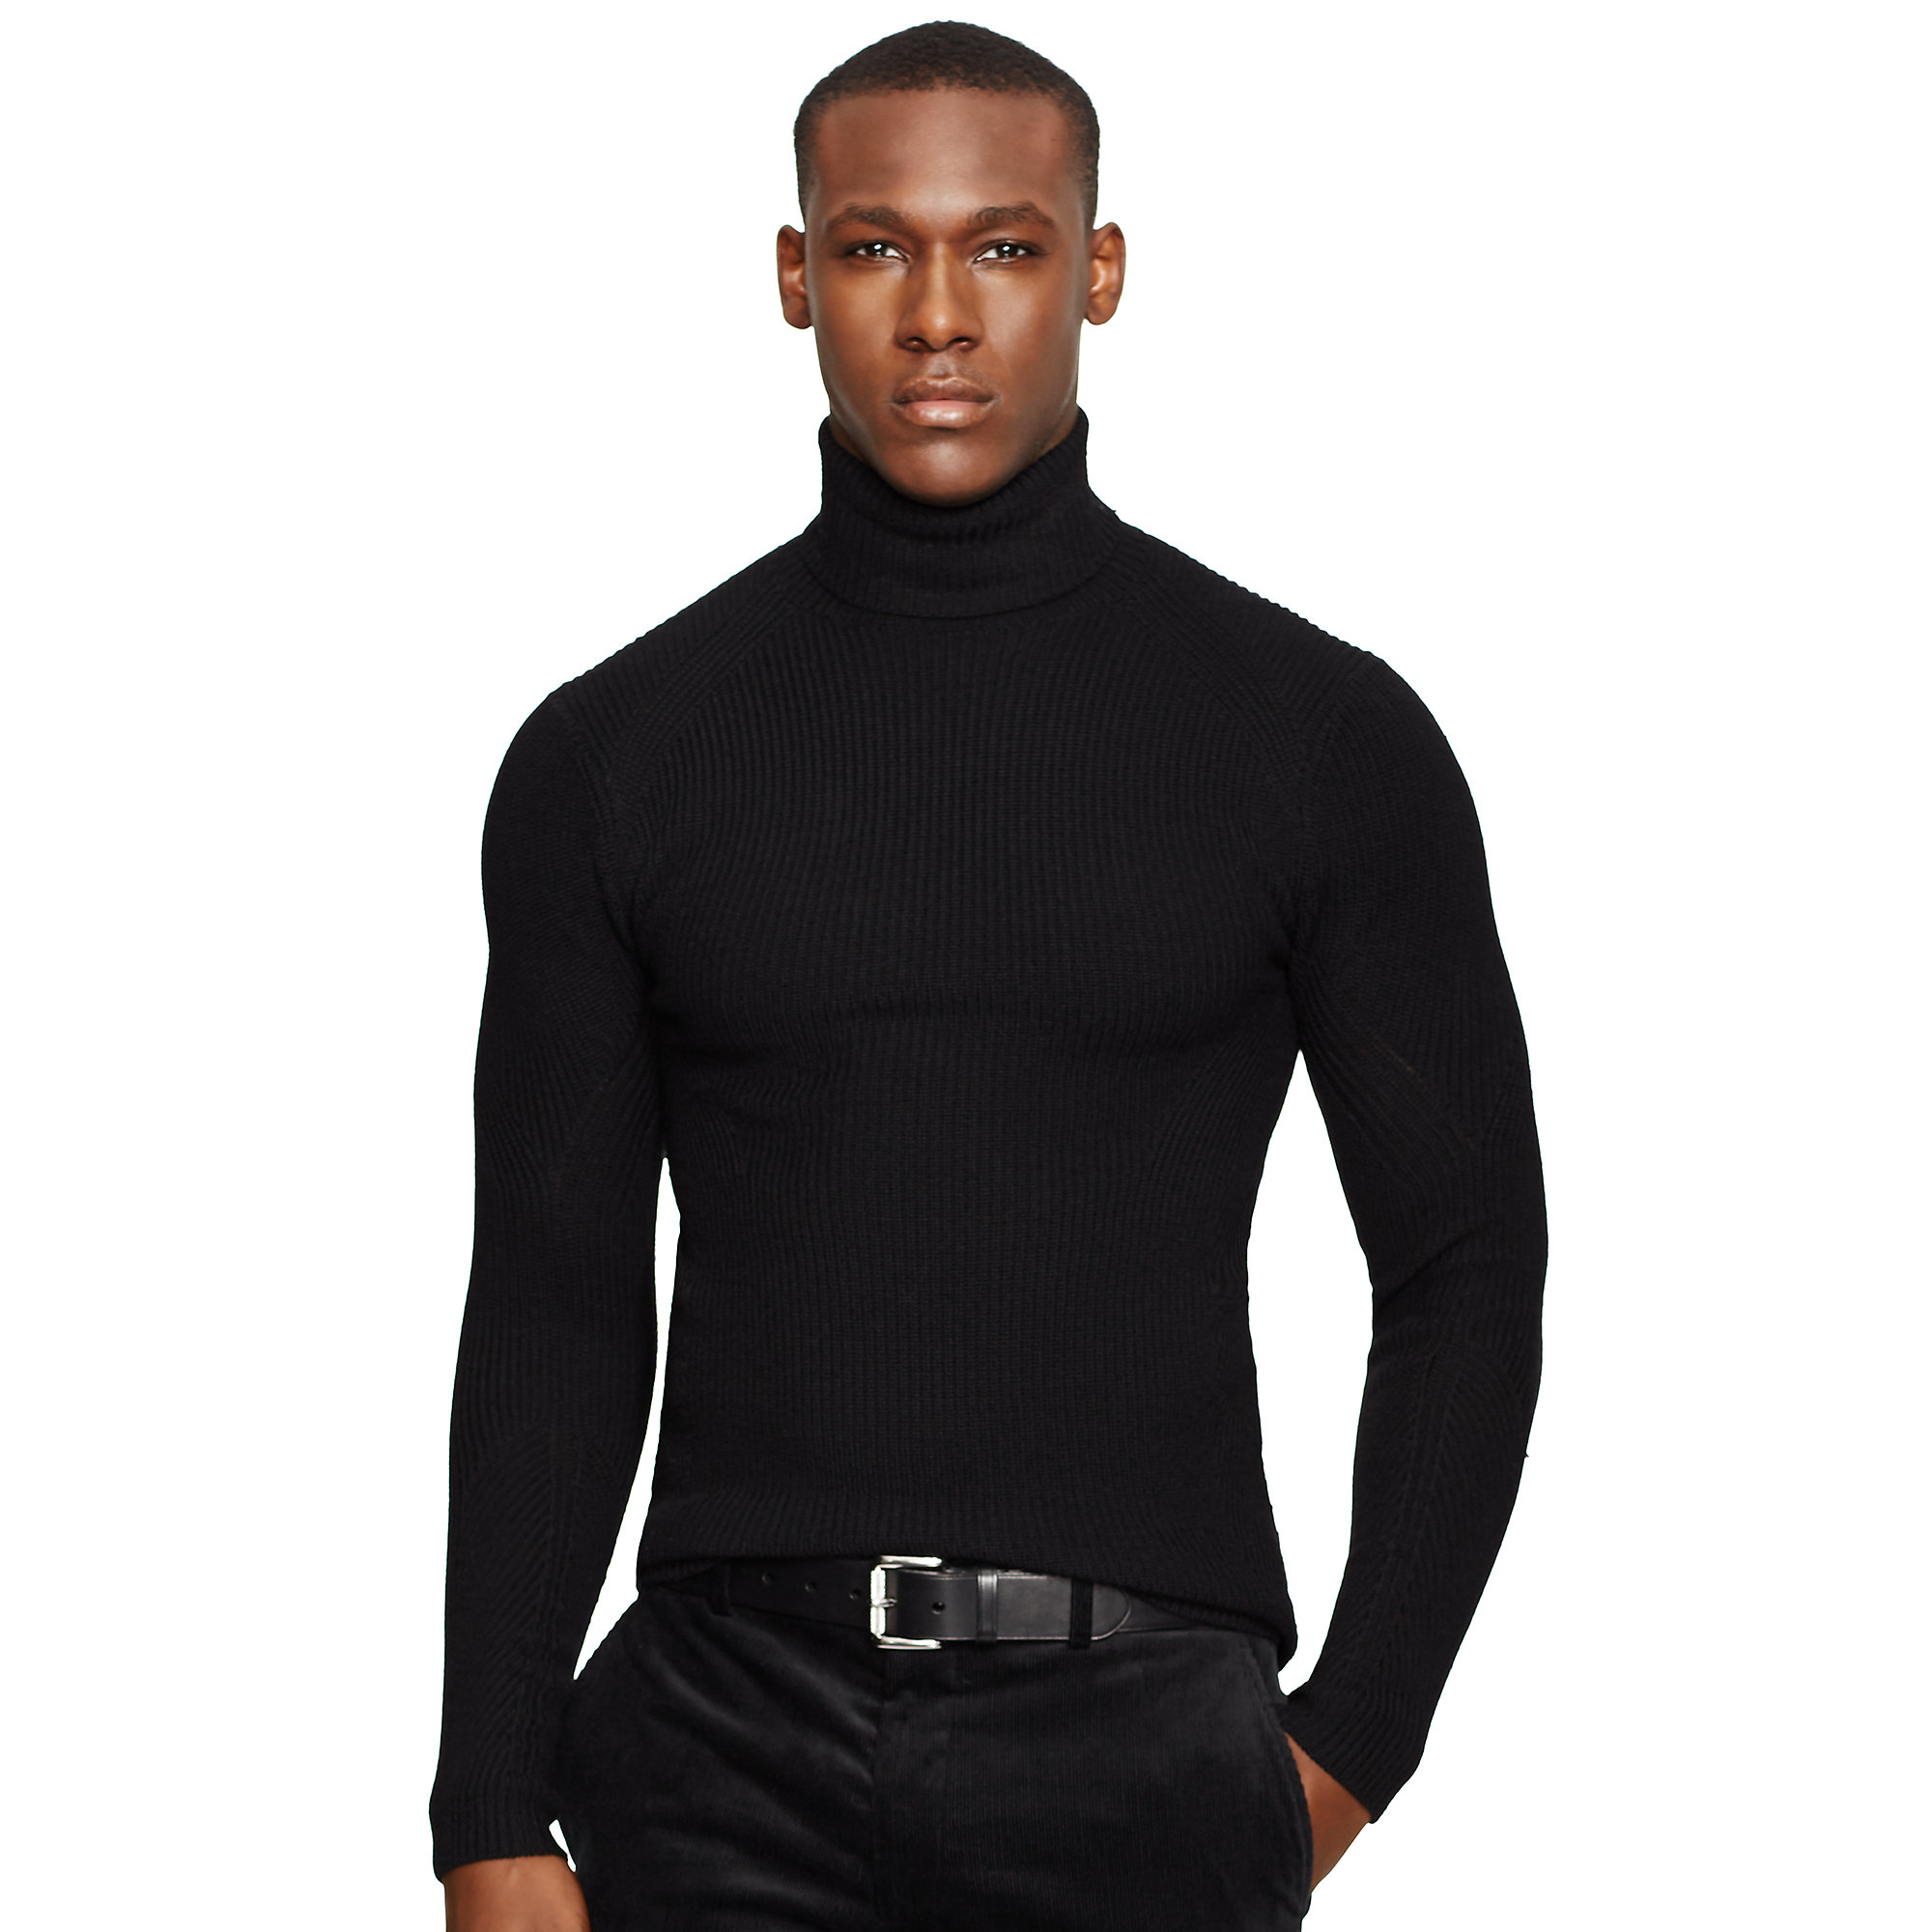 Shop the Latest Collection of Turtleneck Sweaters for Men Online at downloadsolutionspa5tr.gq FREE SHIPPING AVAILABLE!